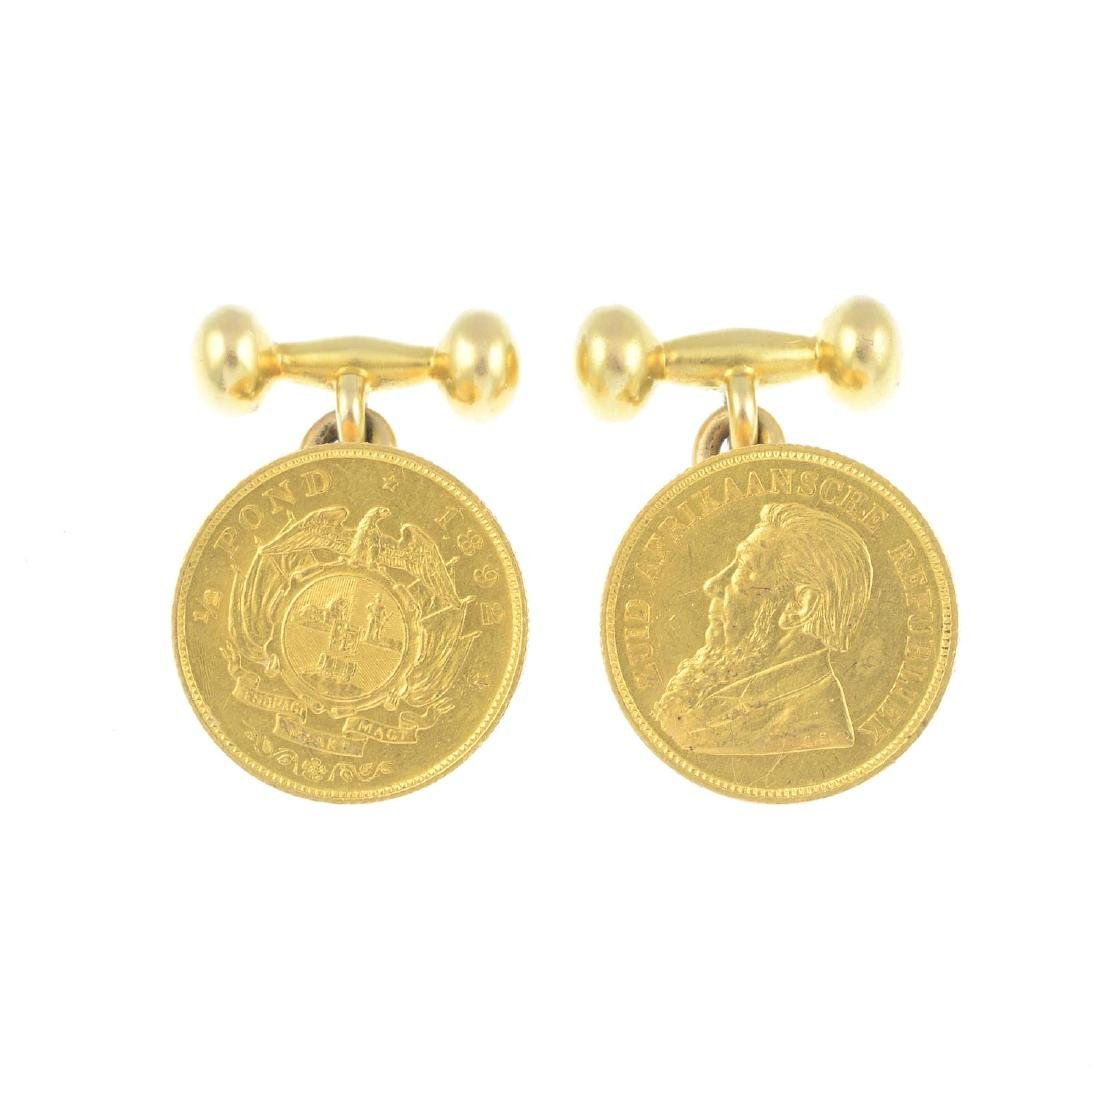 A pair of coin cufflinks. Each designed as a South